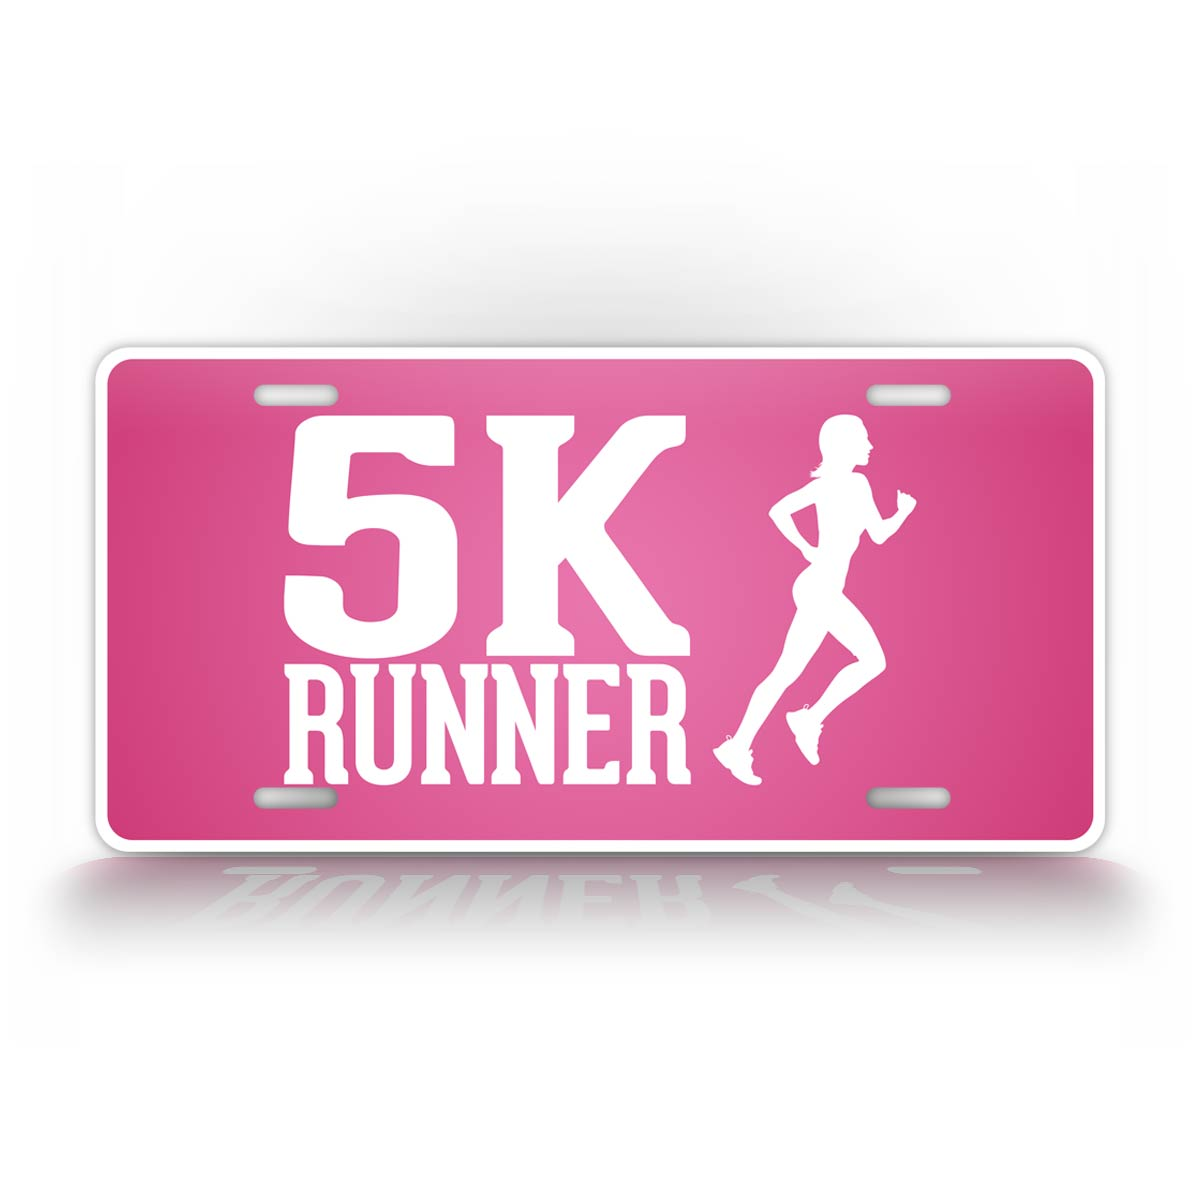 5K Runner License Plate Pink Running Auto Tag